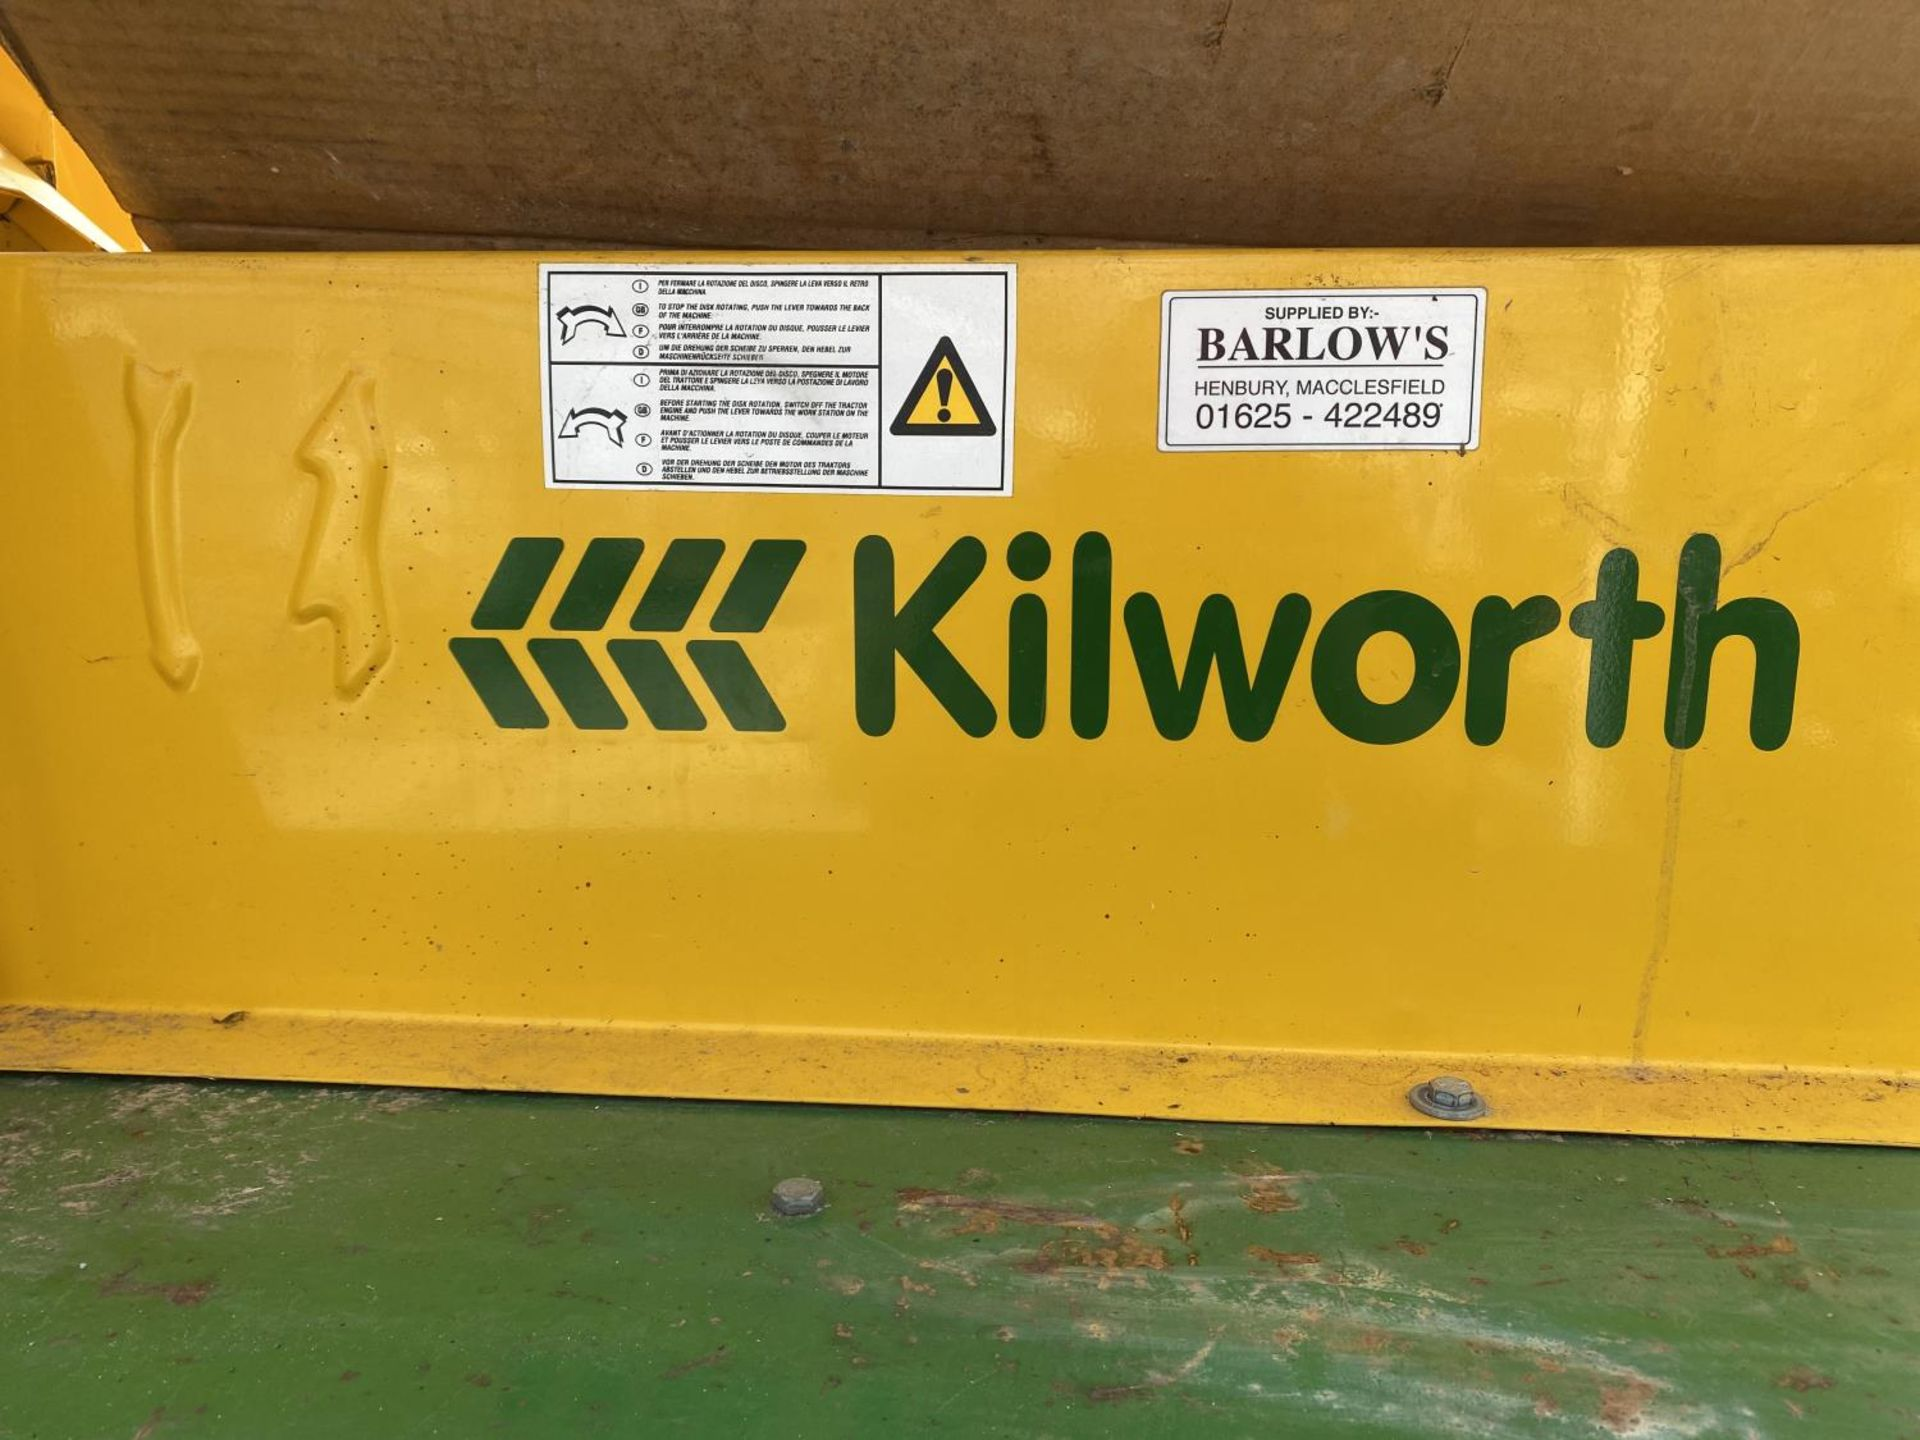 A KILWORTH PTO DRIVEN SAW BENCH AND BLADE BELIEVED WORKING NO WARRANTY + VAT - Image 4 of 4